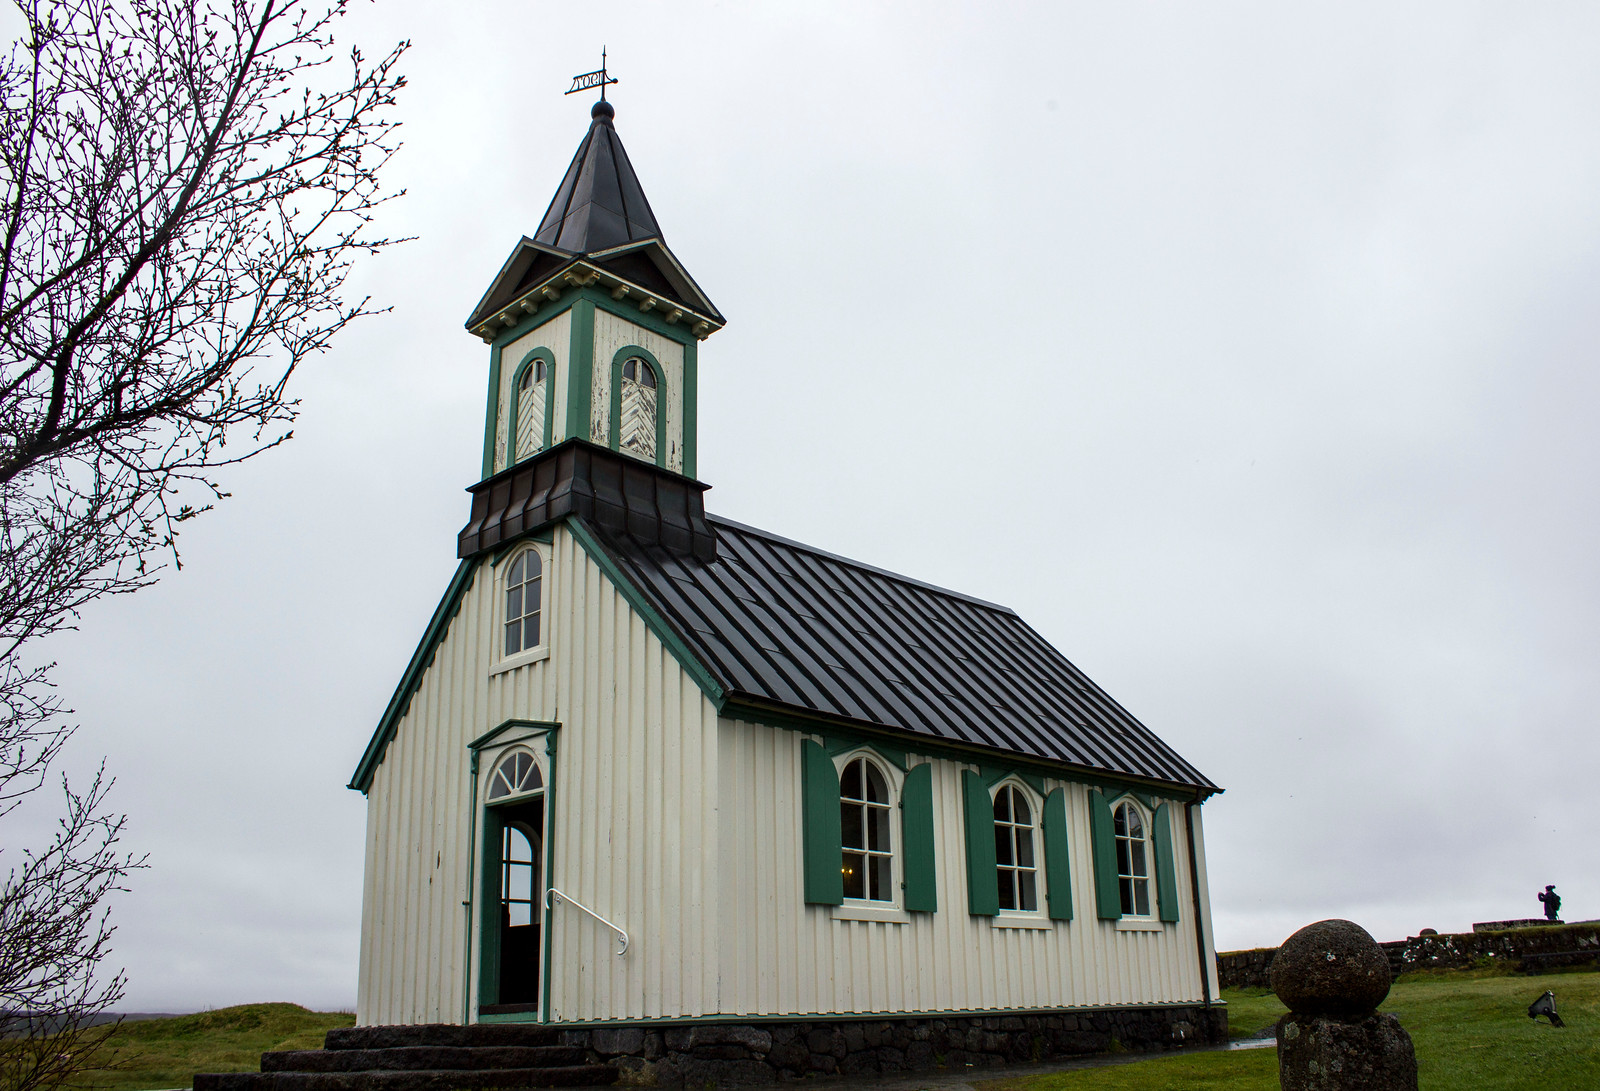 Þingvallakirkja Church at Thingvellir National Park, Iceland